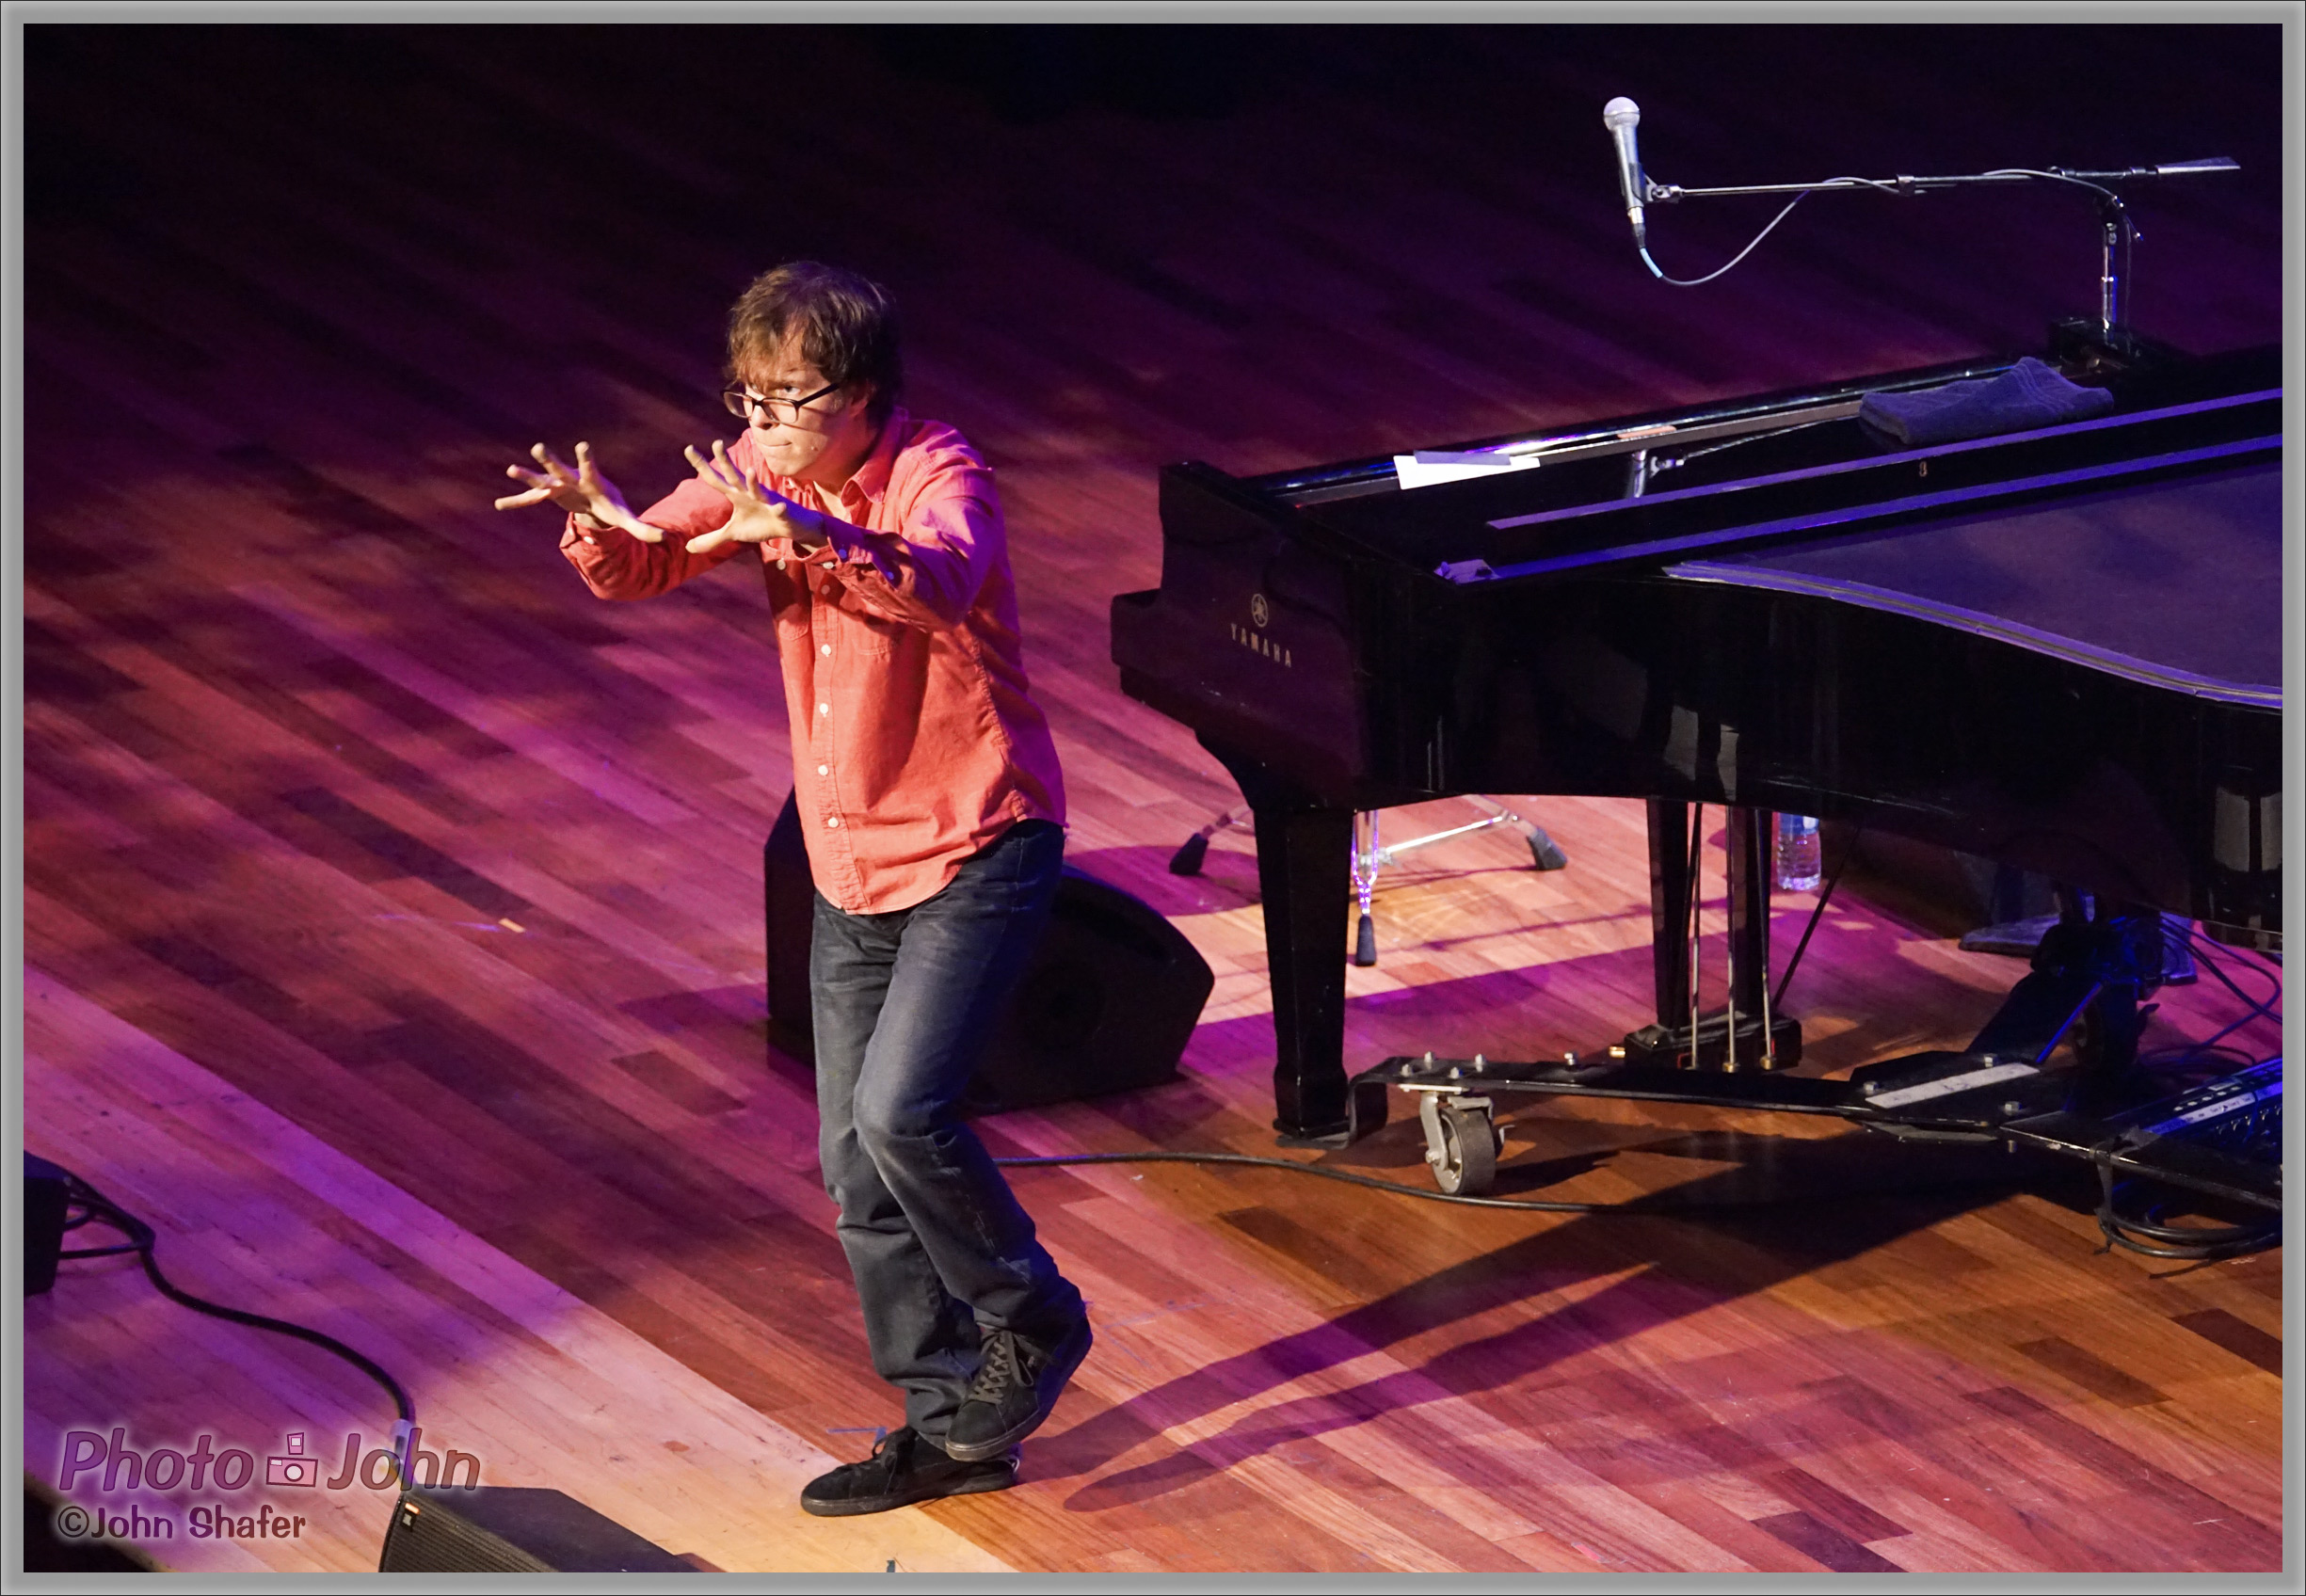 Ben Folds Directing the Audience - Sony Alpha A7R at ISO 6400